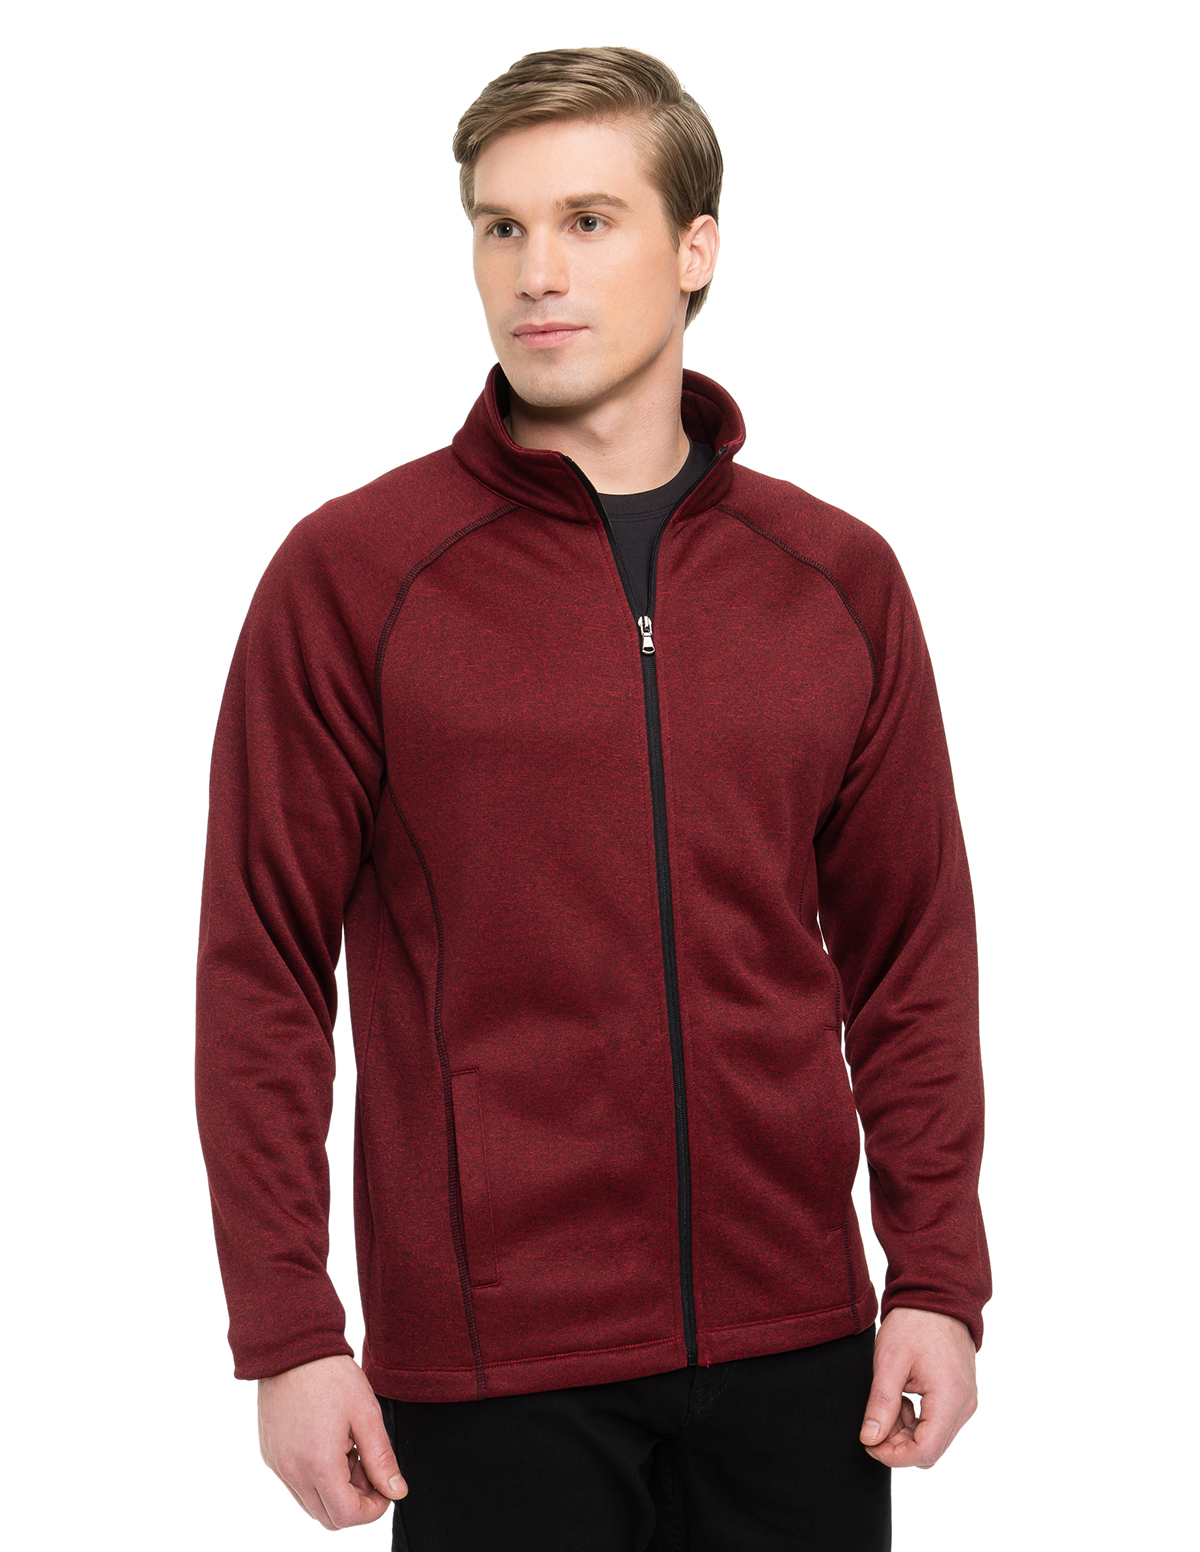 Tri-Mountain Performance F7370 - Vapor Men's 100% Polyester Heather Fleece Jacket